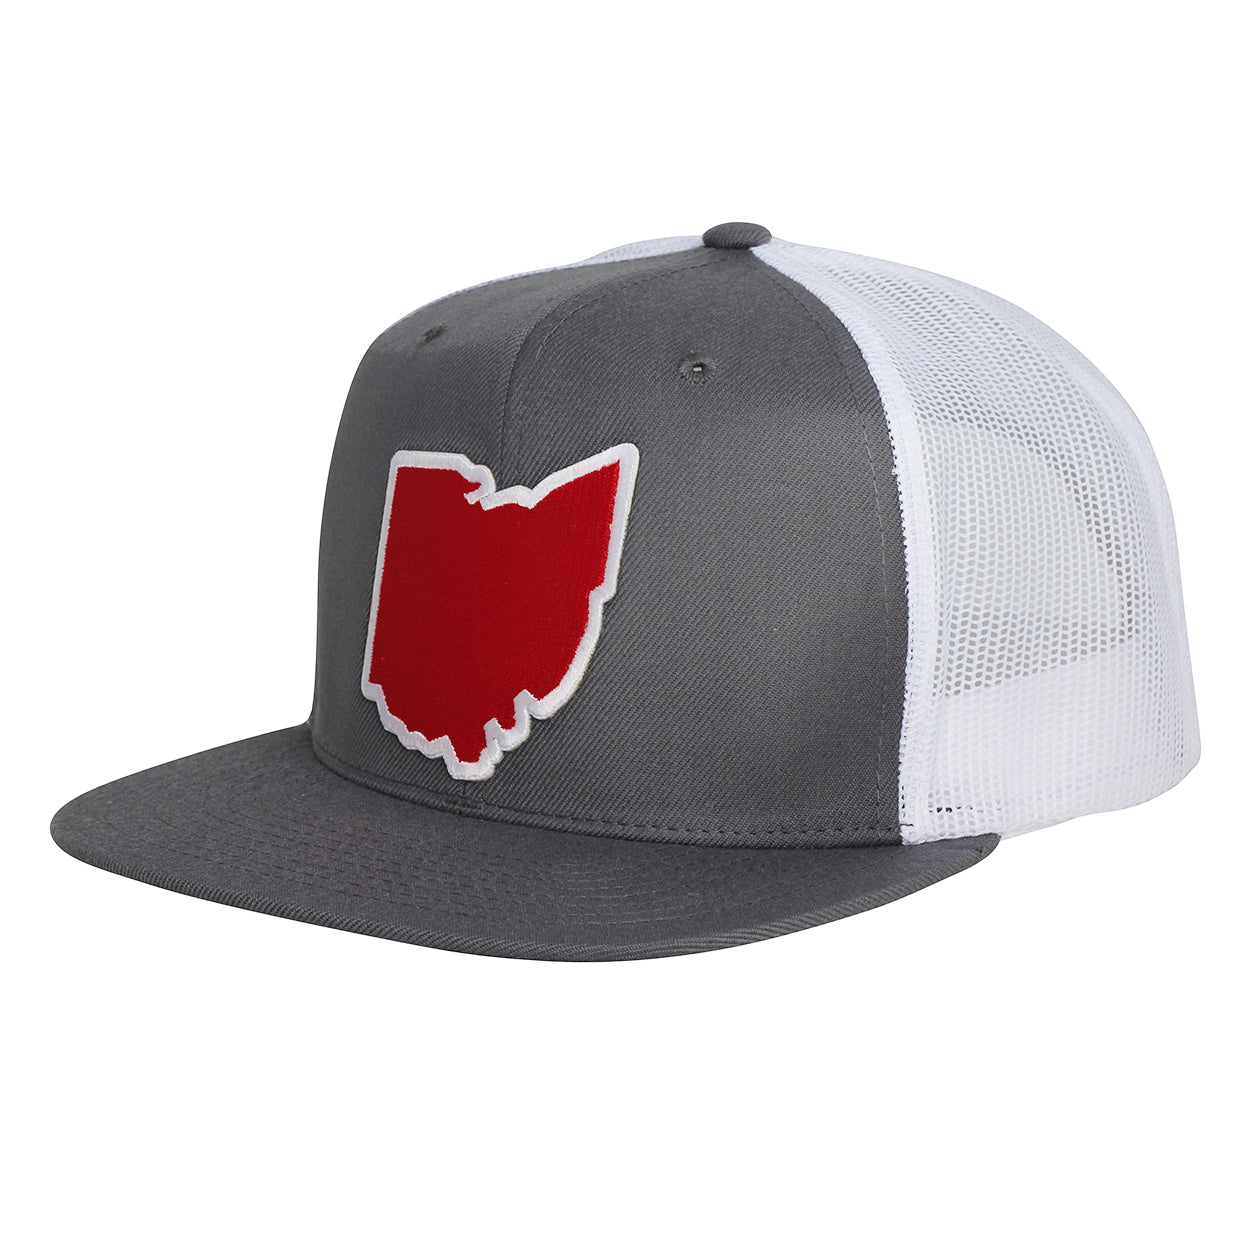 Ohio Red Patch Wool Snap back Trucker Hat